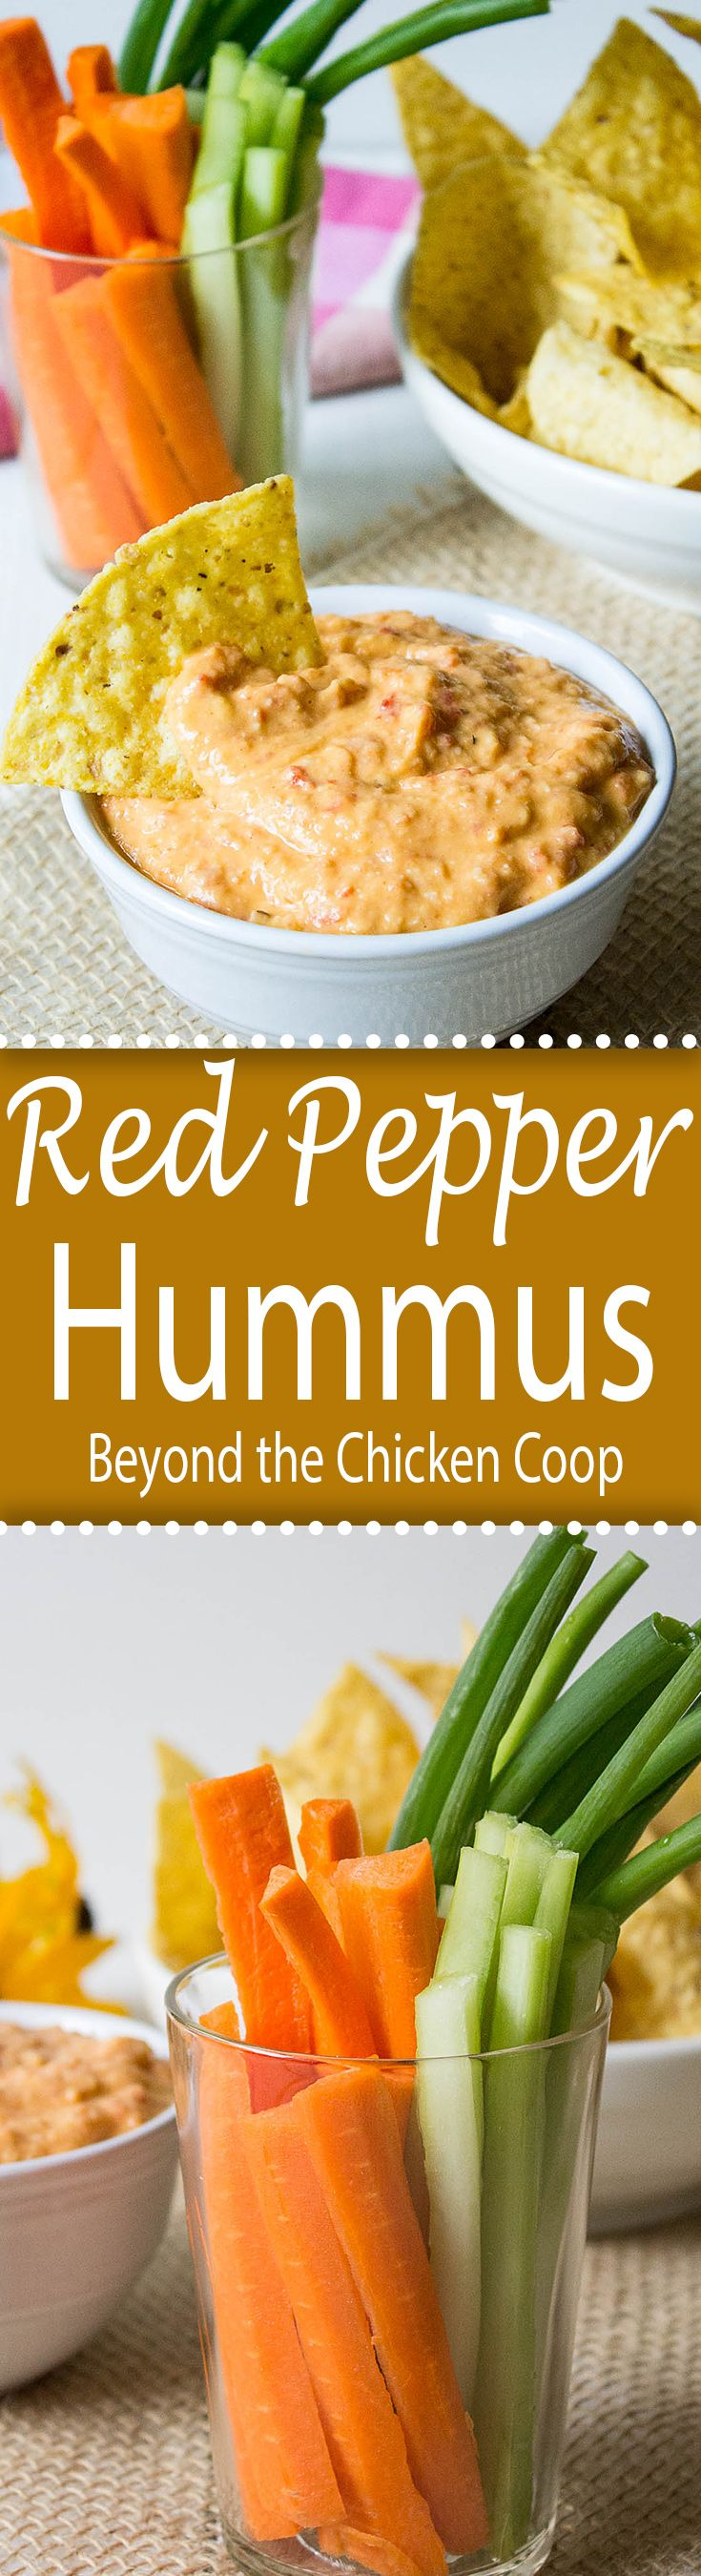 306 best images about israeli recipes on pinterest for Roasted red bell pepper hummus